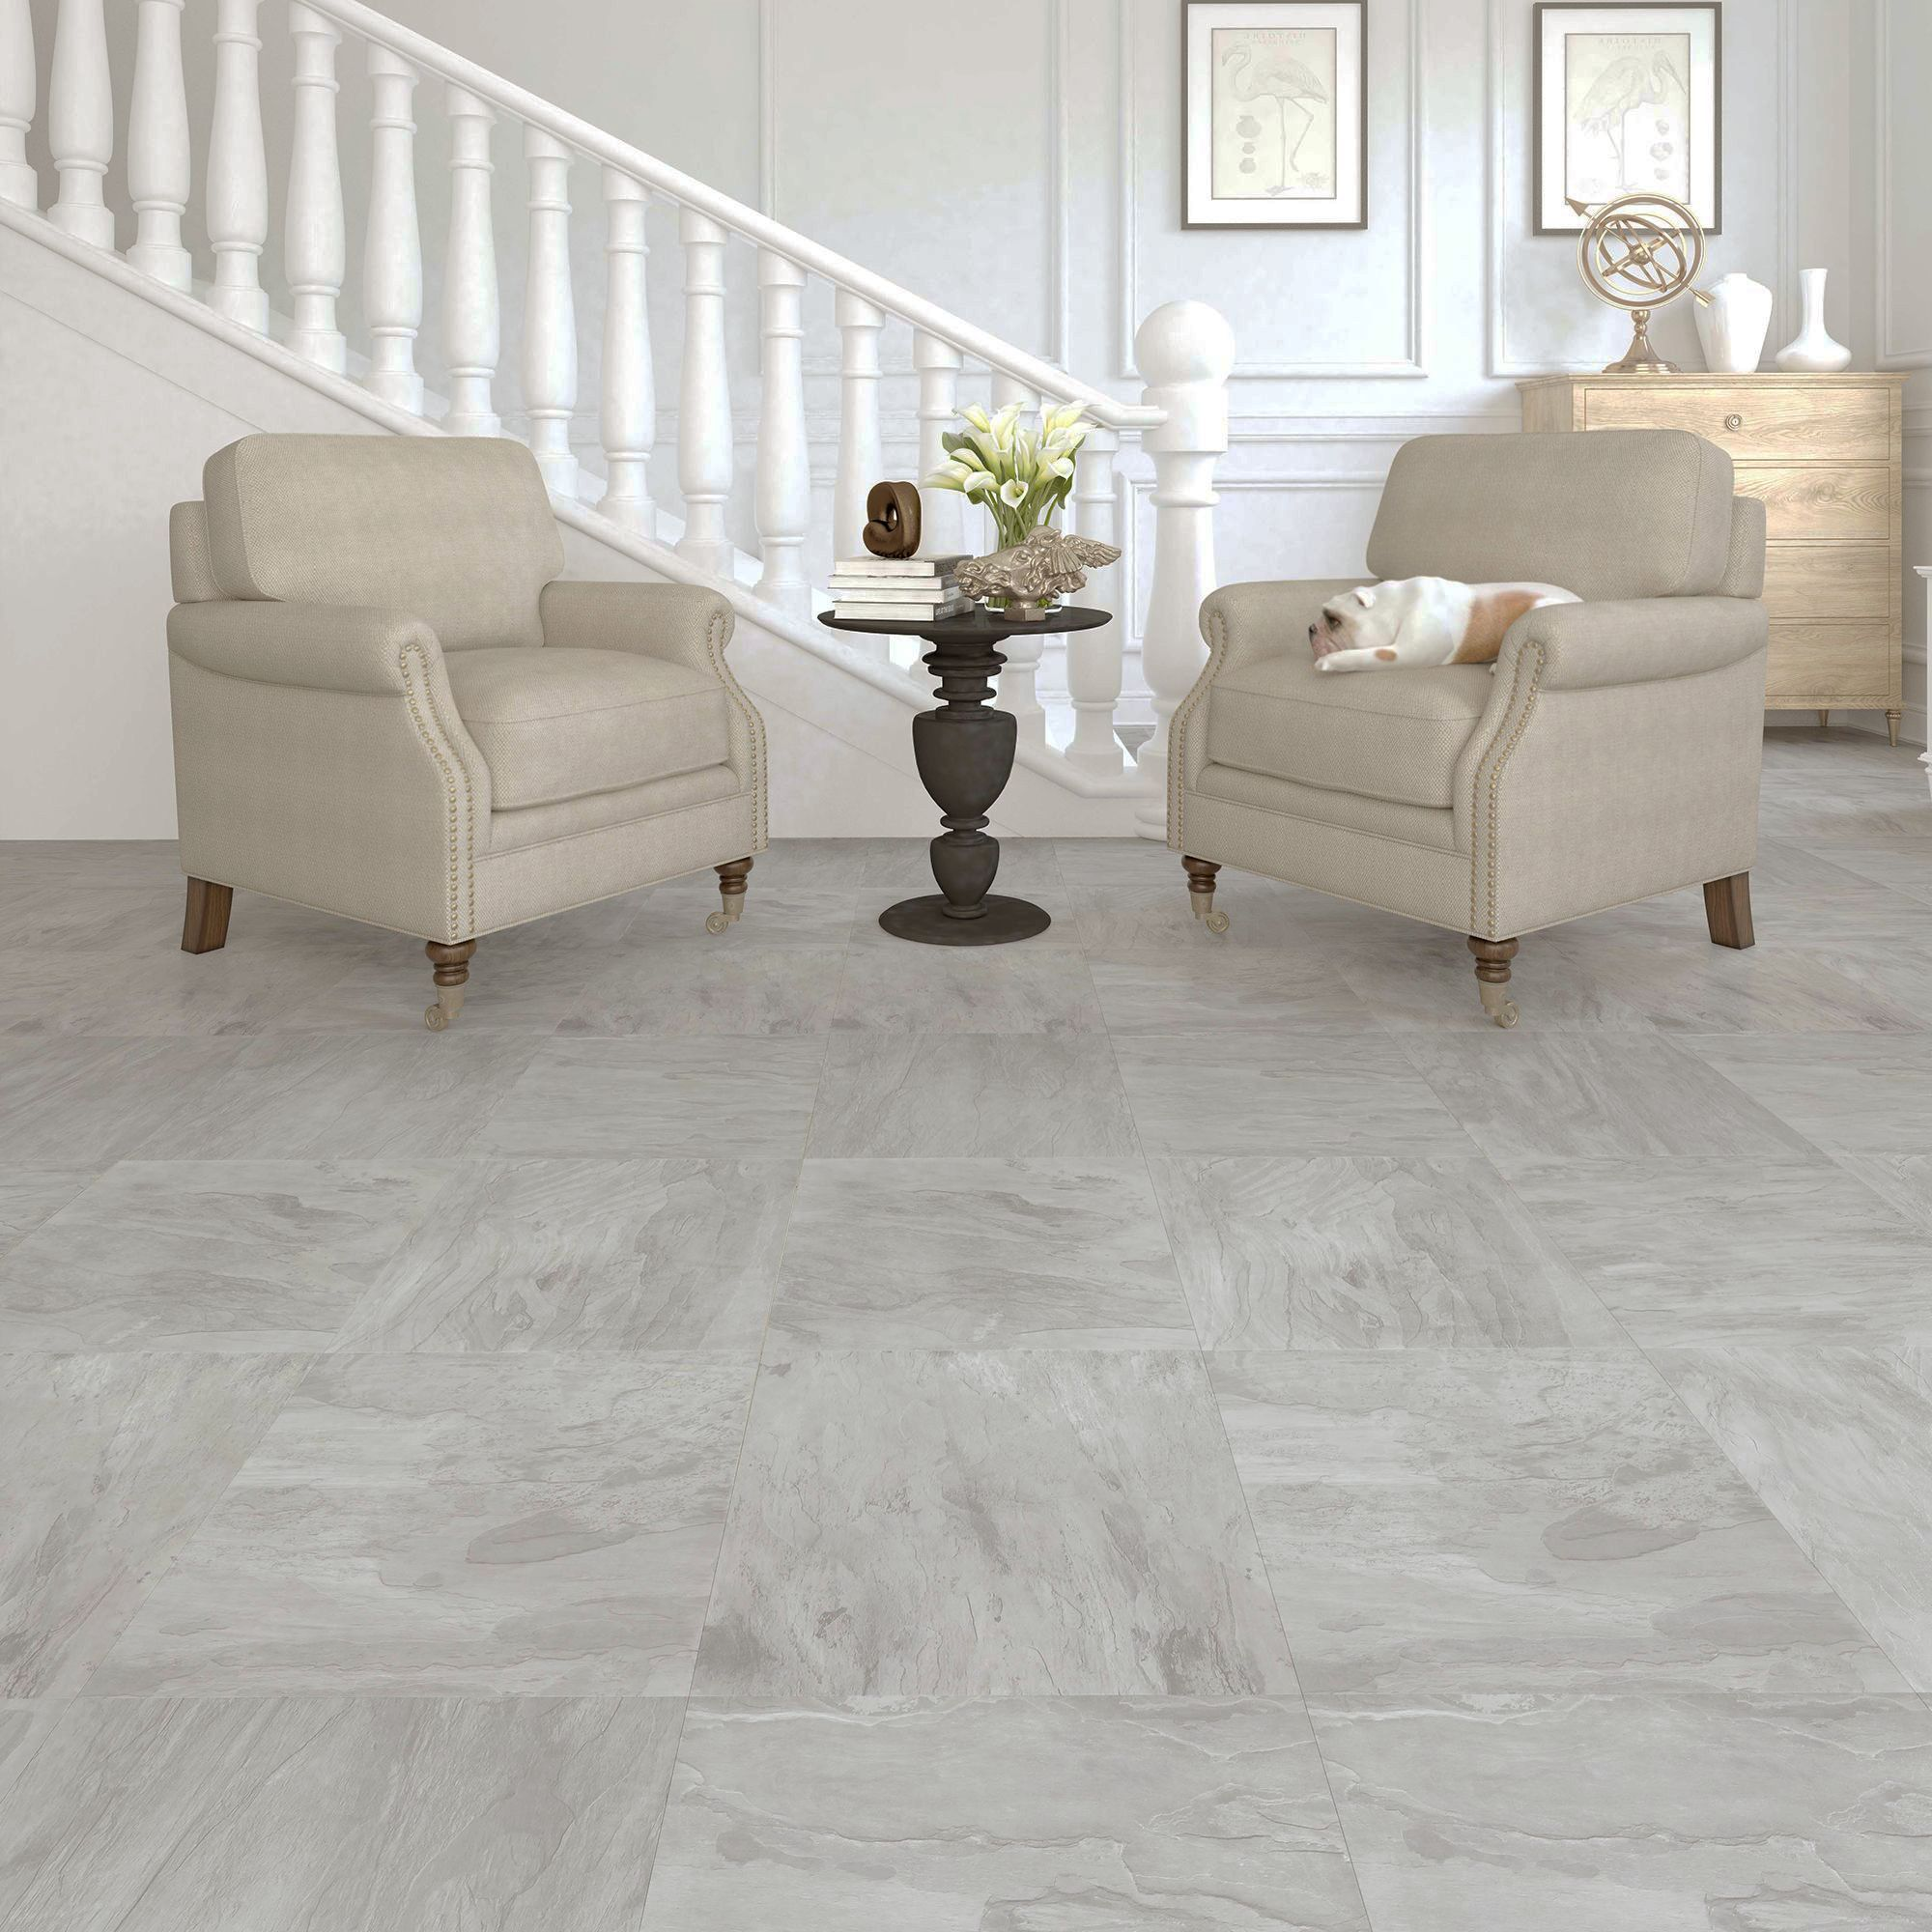 Leggiero Light Grey Slate Effect Laminate Flooring 1.86 m²